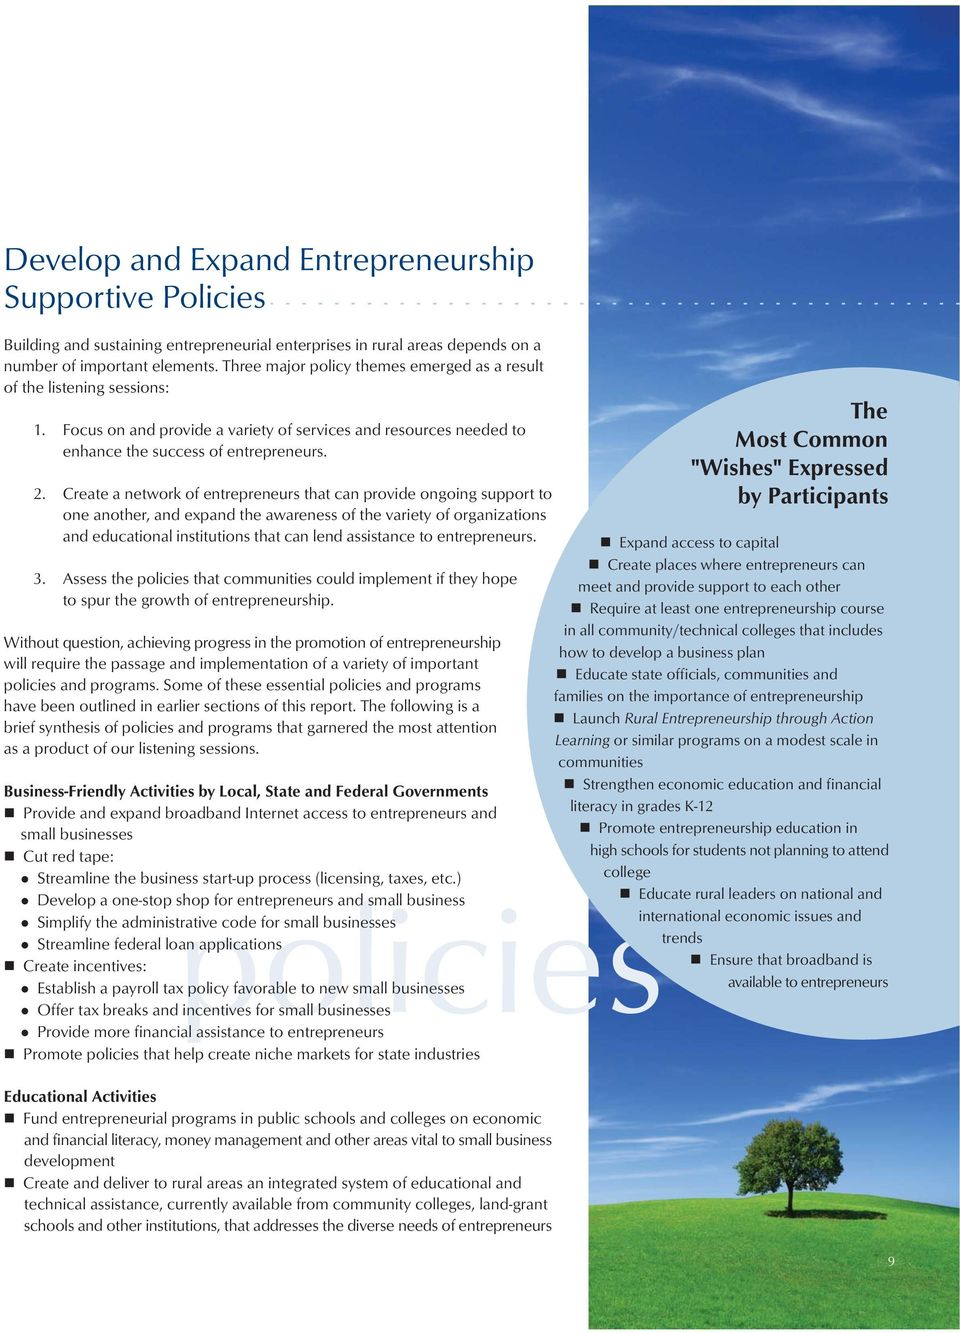 Create a network of entrepreneurs that can provide ongoing support to one another, and expand the awareness of the variety of organizations and educational institutions that can lend assistance to